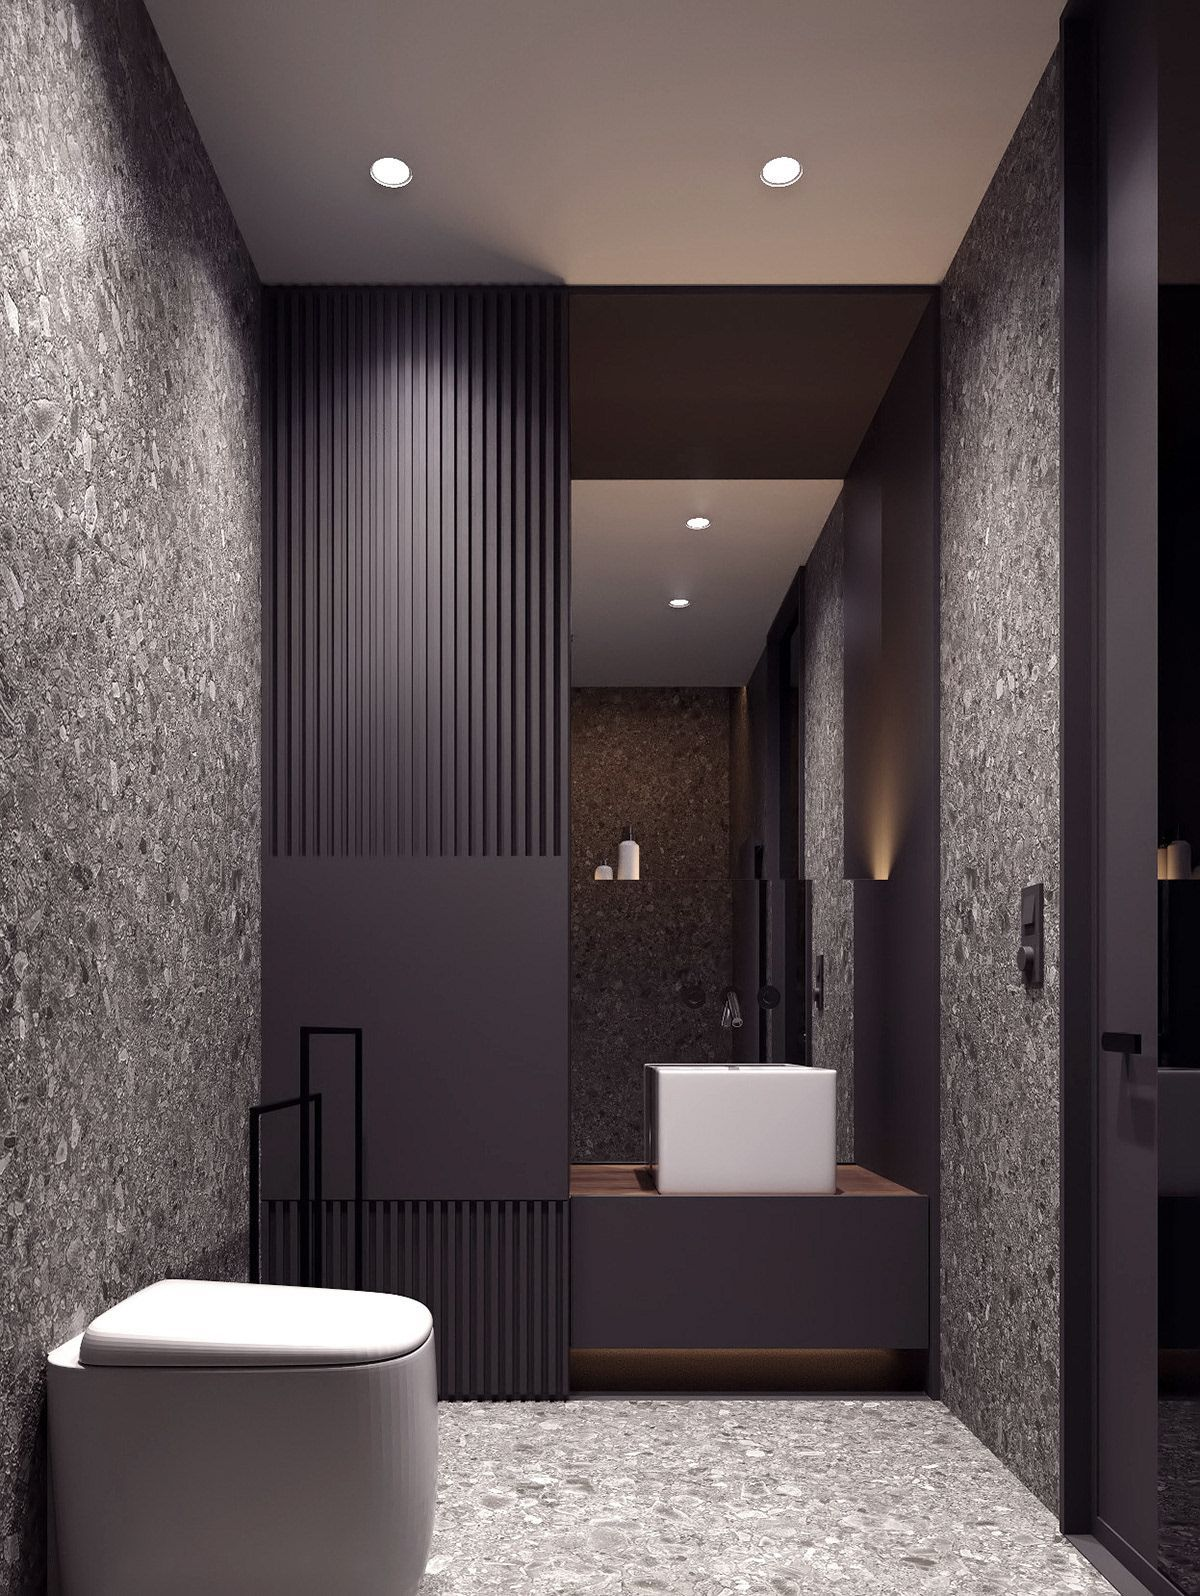 Meshberg Group Are Known For Their Minimalistic Bathroom Designs